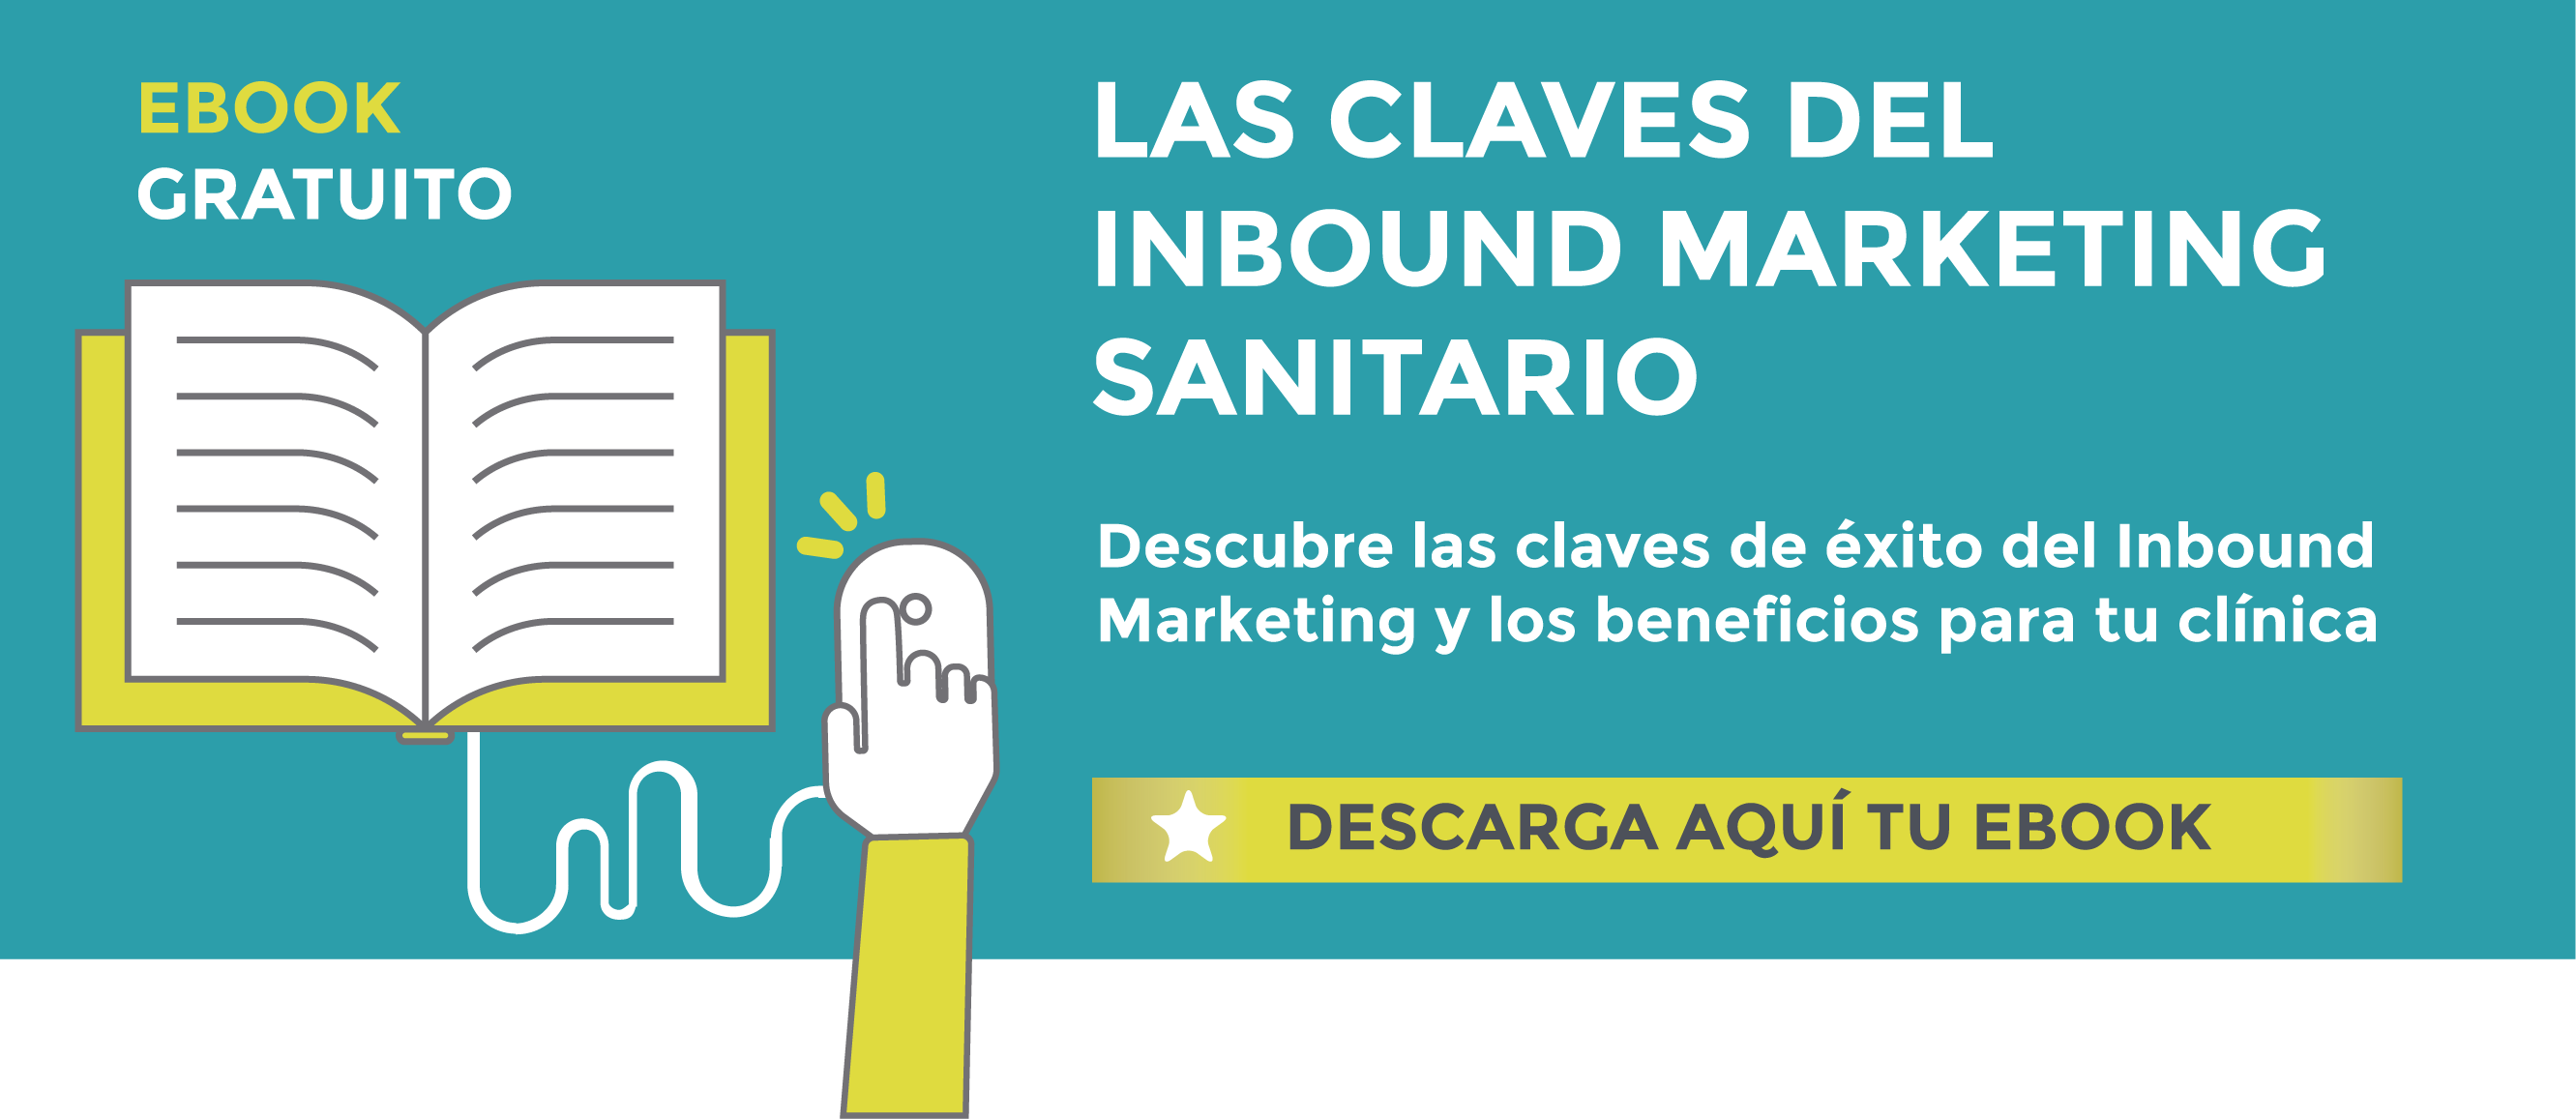 Descarga la guía gratuita sobre las claves del Inbound Marketing sanitario